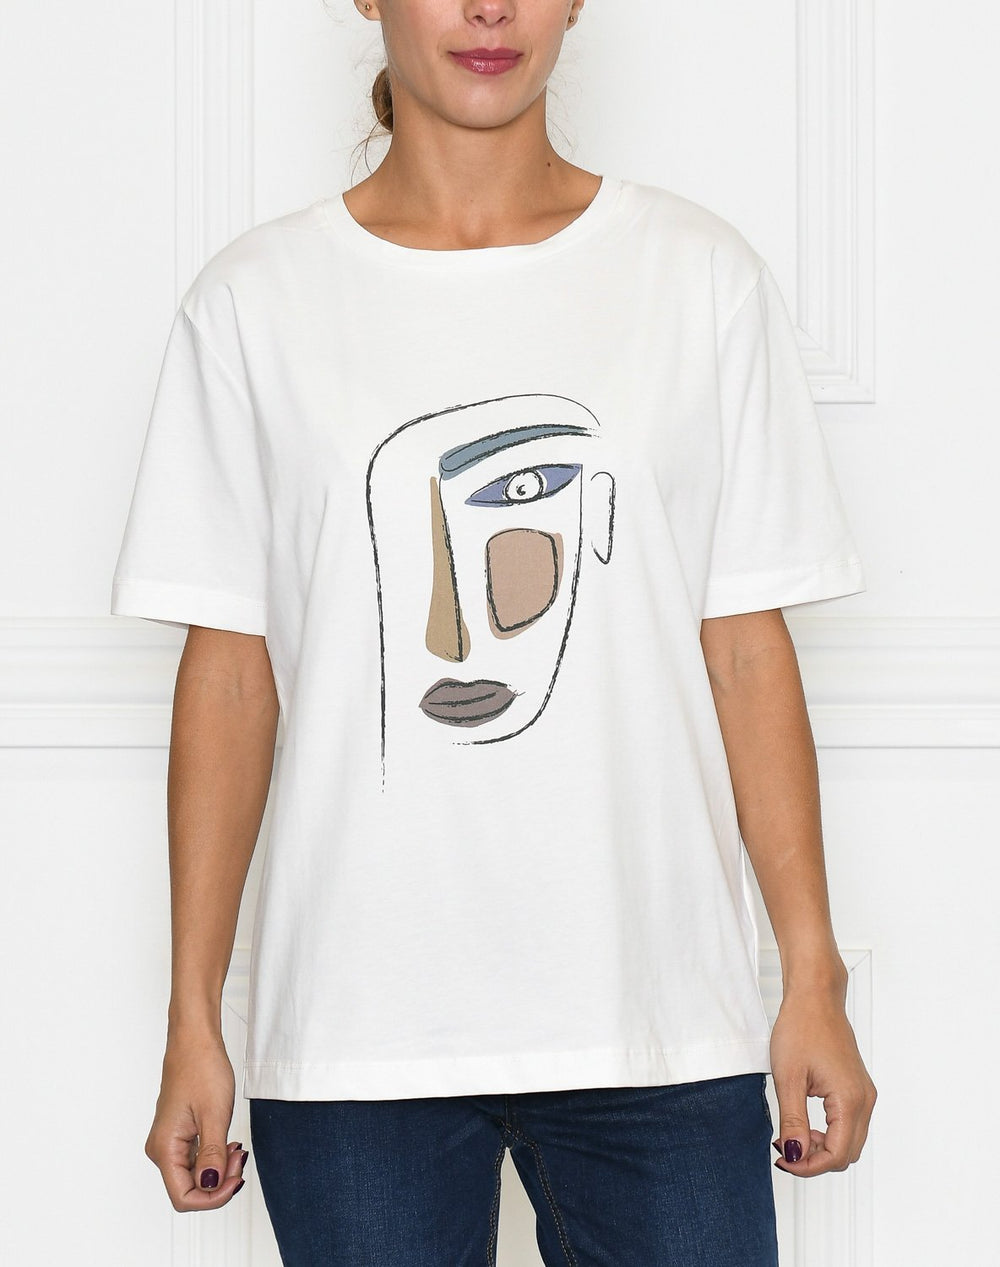 Luxzuz t-shirt face cream - Online-Mode